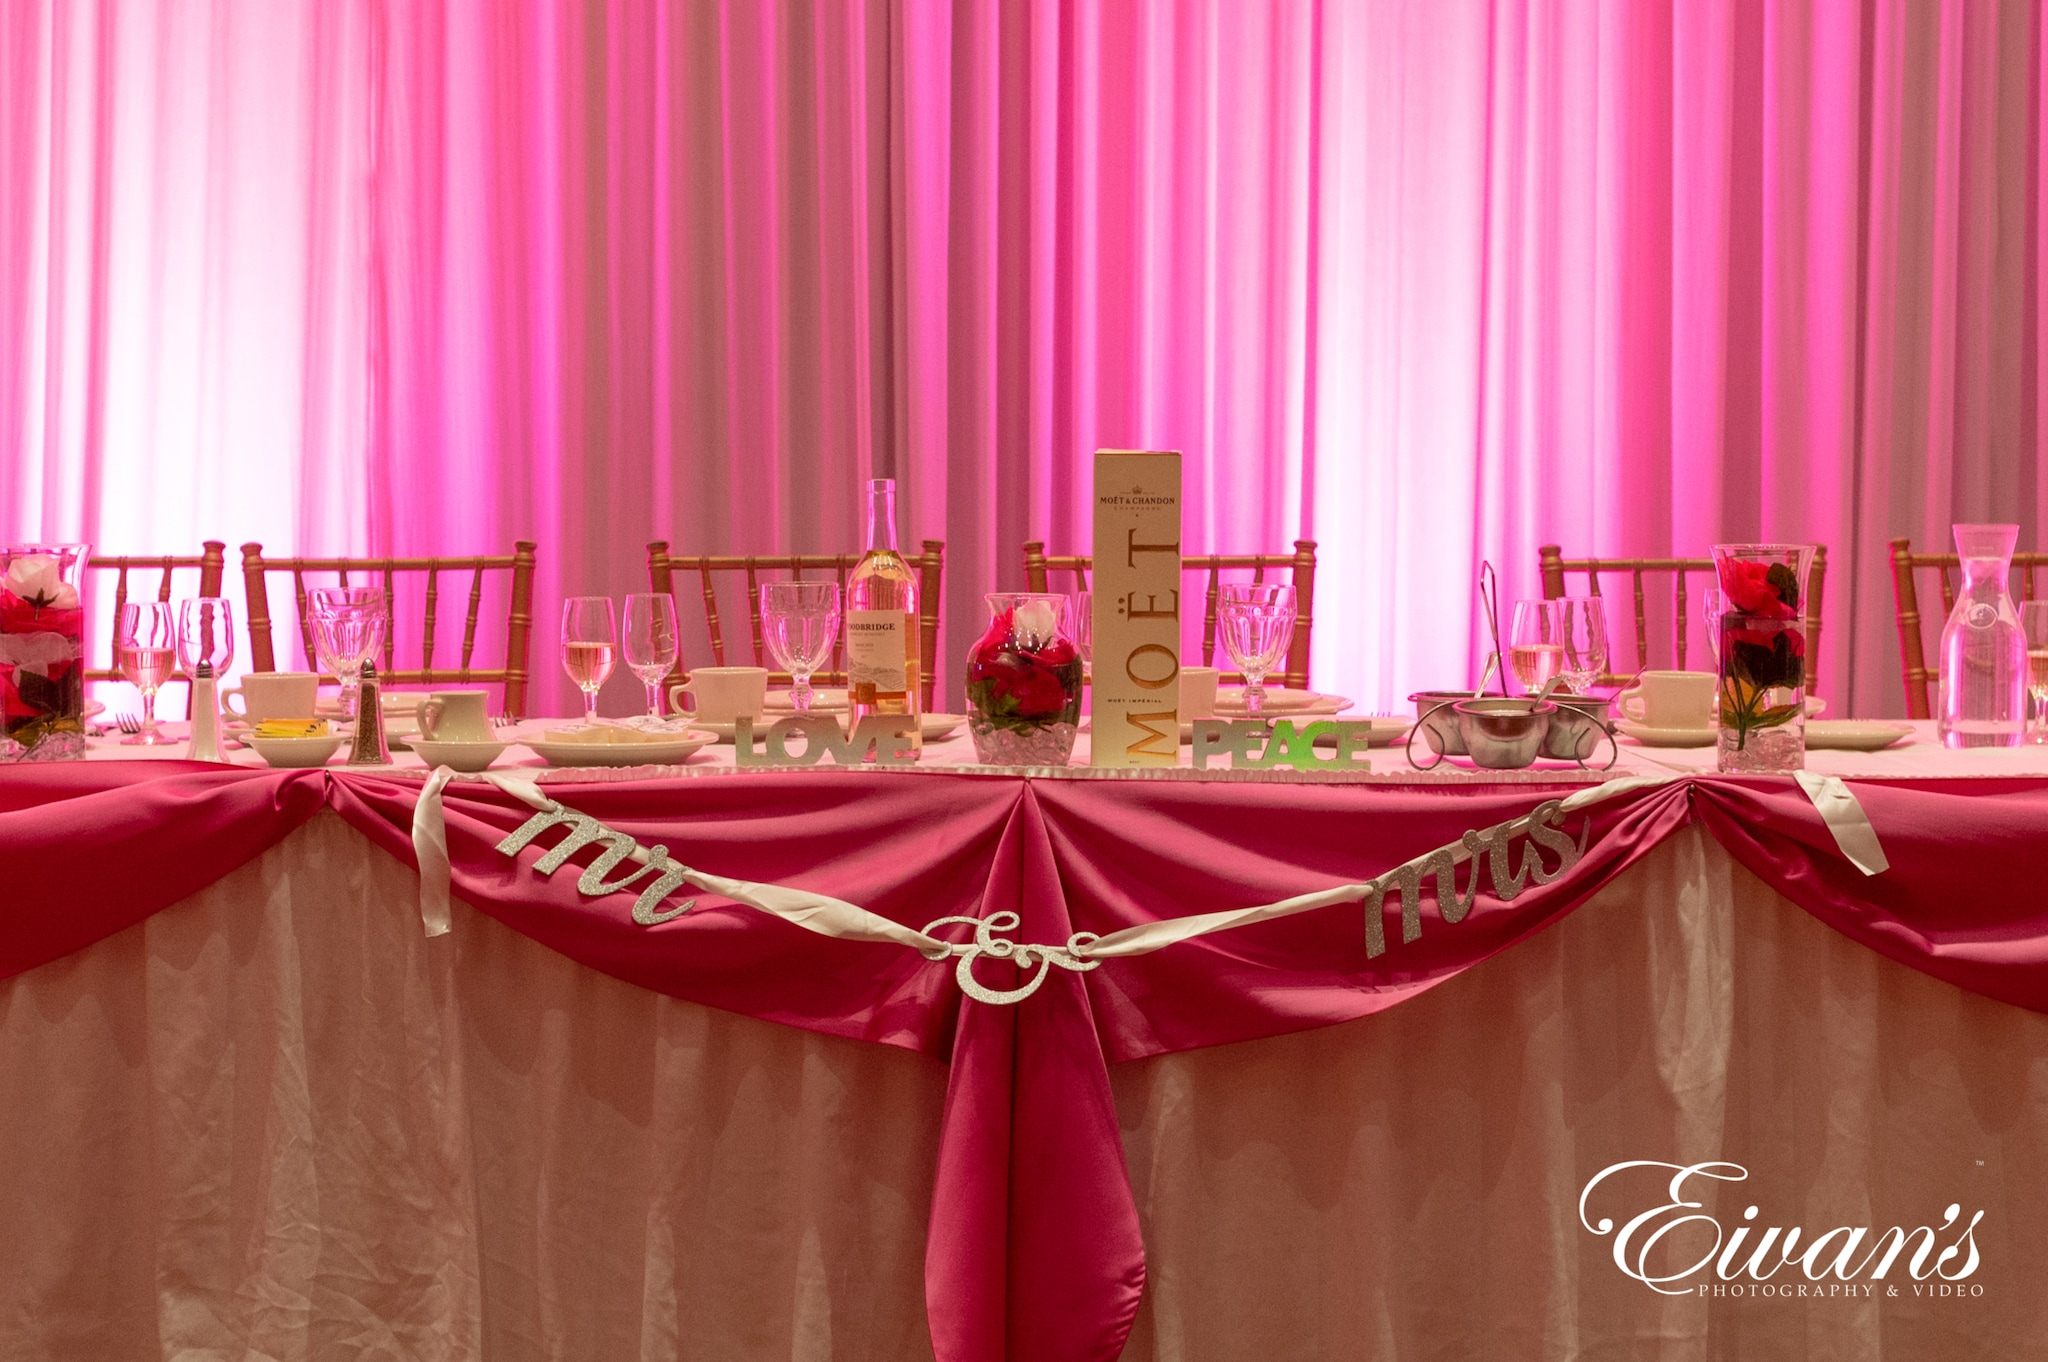 image of the bridal table